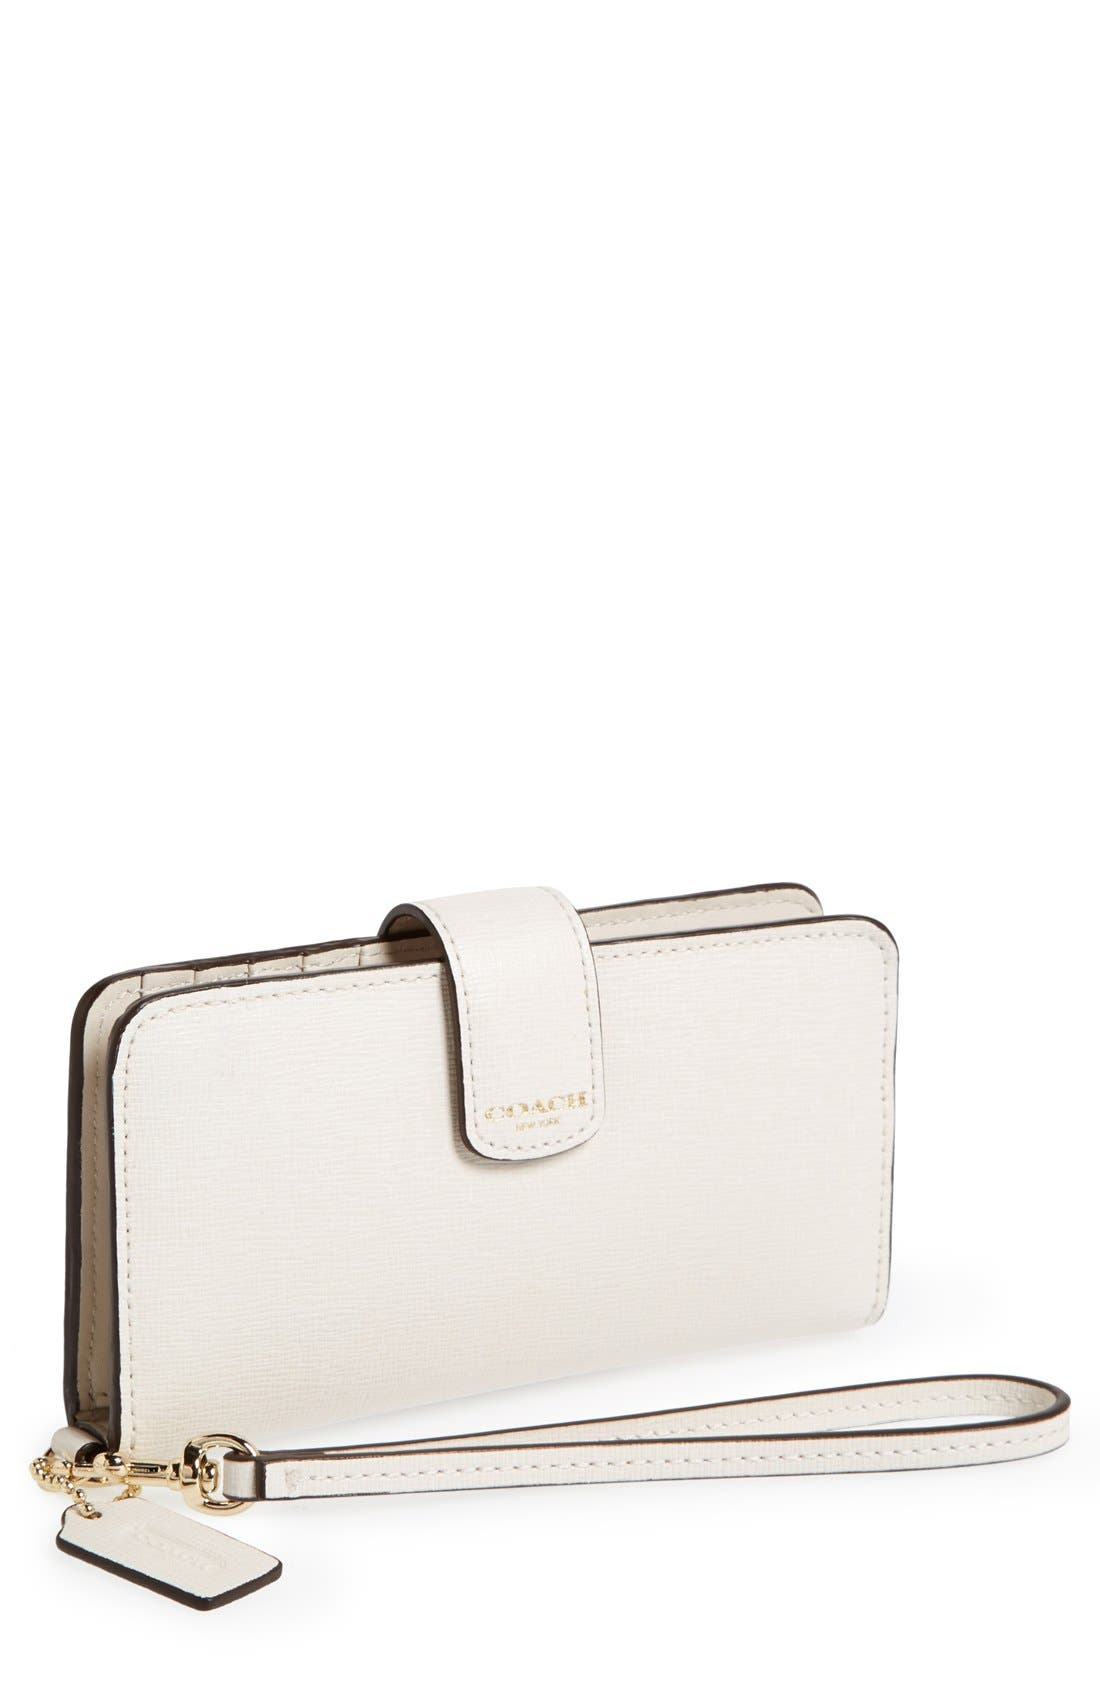 Alternate Image 1 Selected - COACH Saffiano Leather Phone Wallet